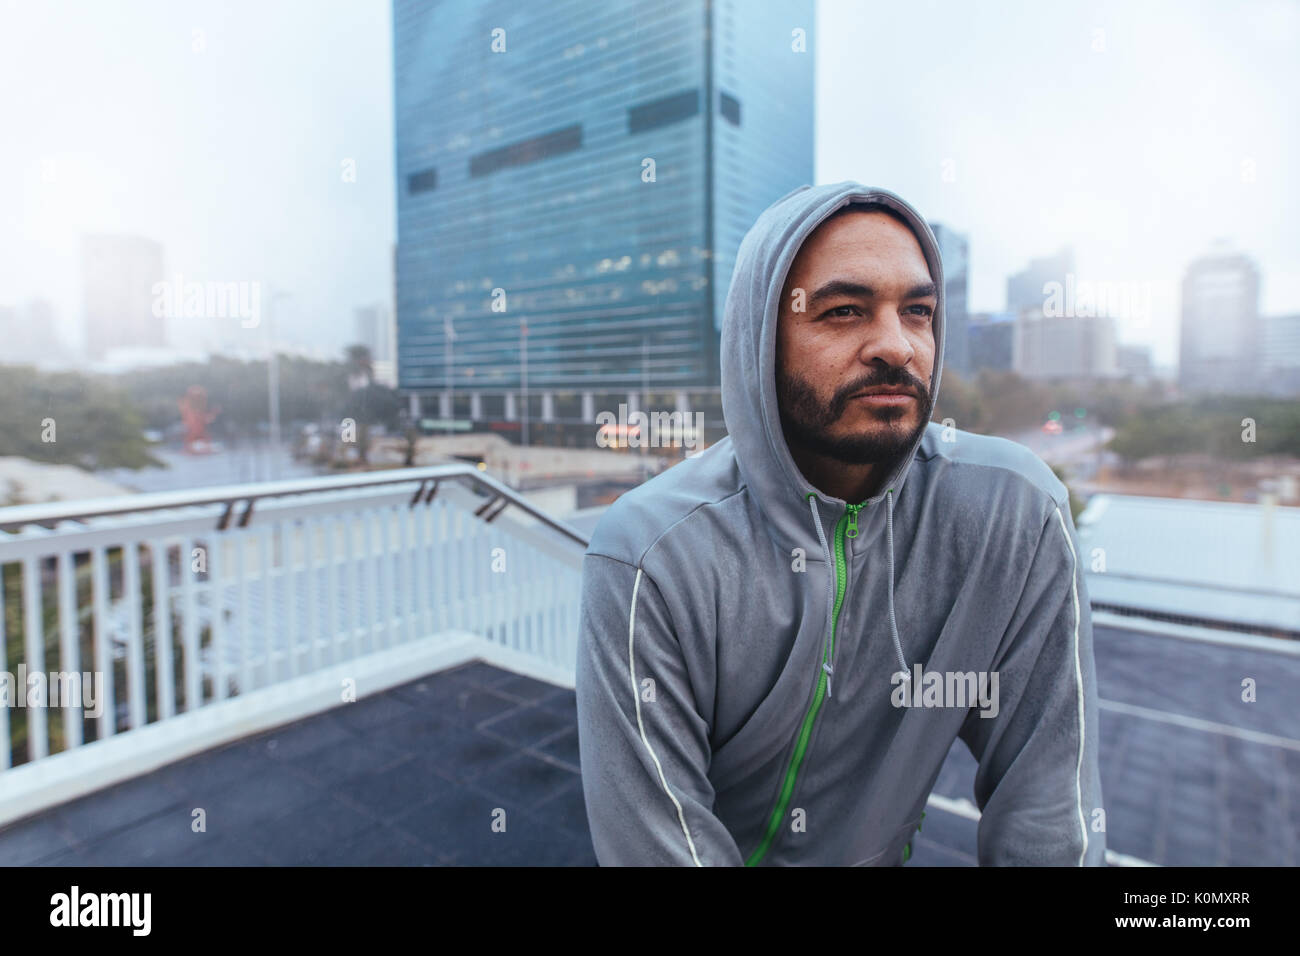 Man in hooded sweatshirt looking away. Man on top of a building against a blurred cityscape. - Stock Image